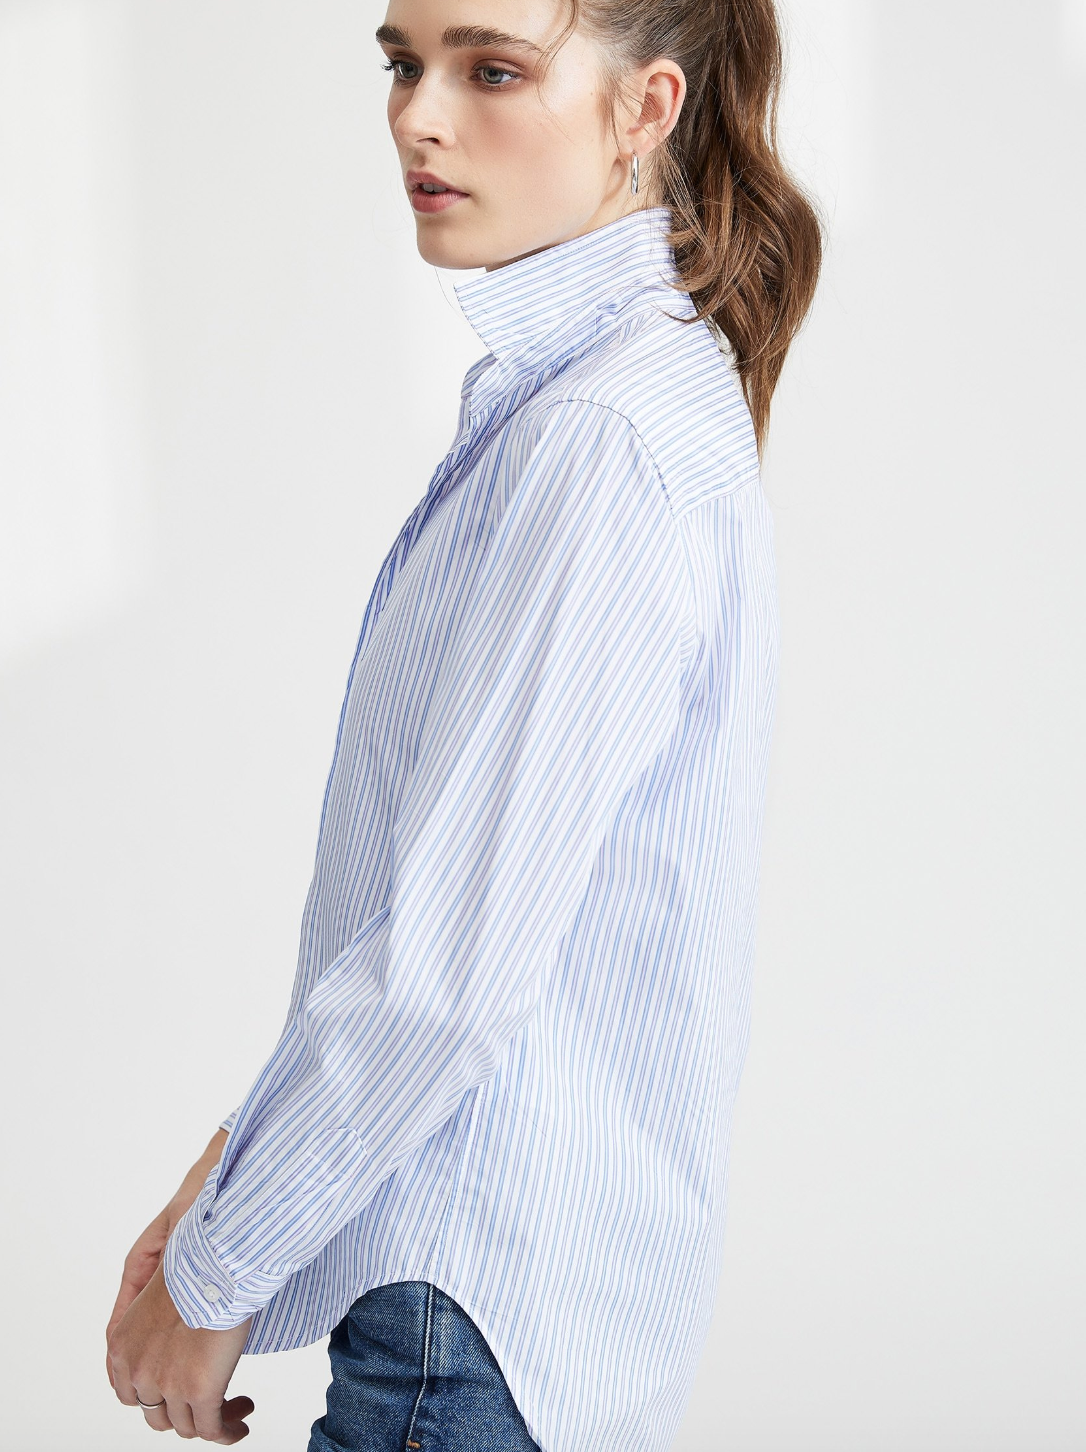 Frank - Poplin - White w Pink and Blue stripe